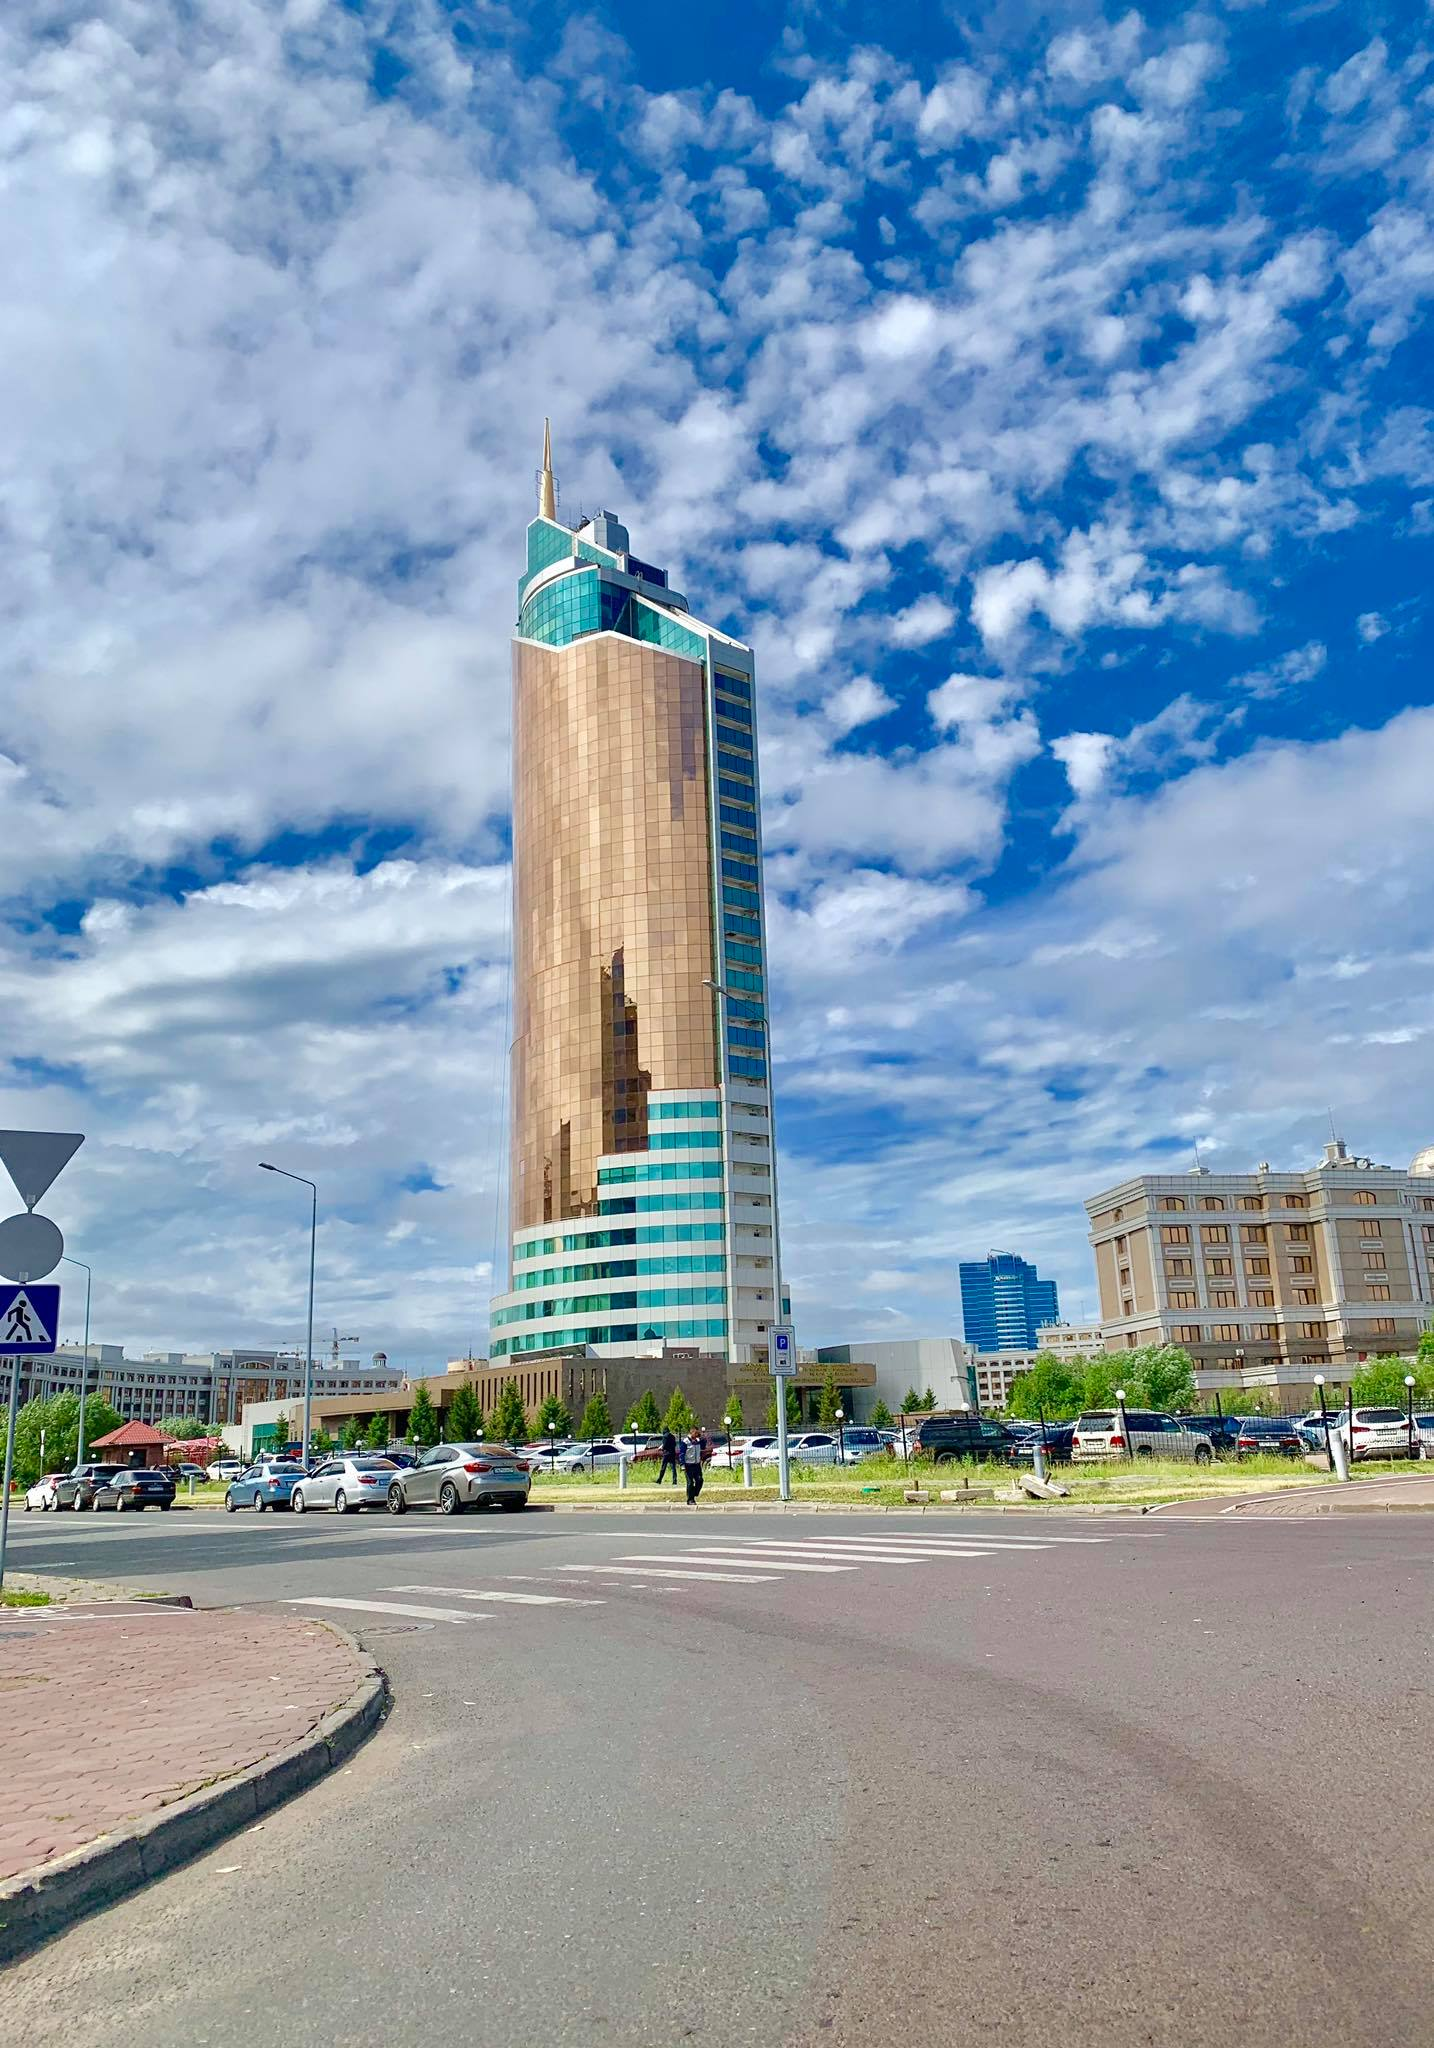 Kach Solo Travels in 2019 Nursultan  Astana - the City of the Future31.jpg